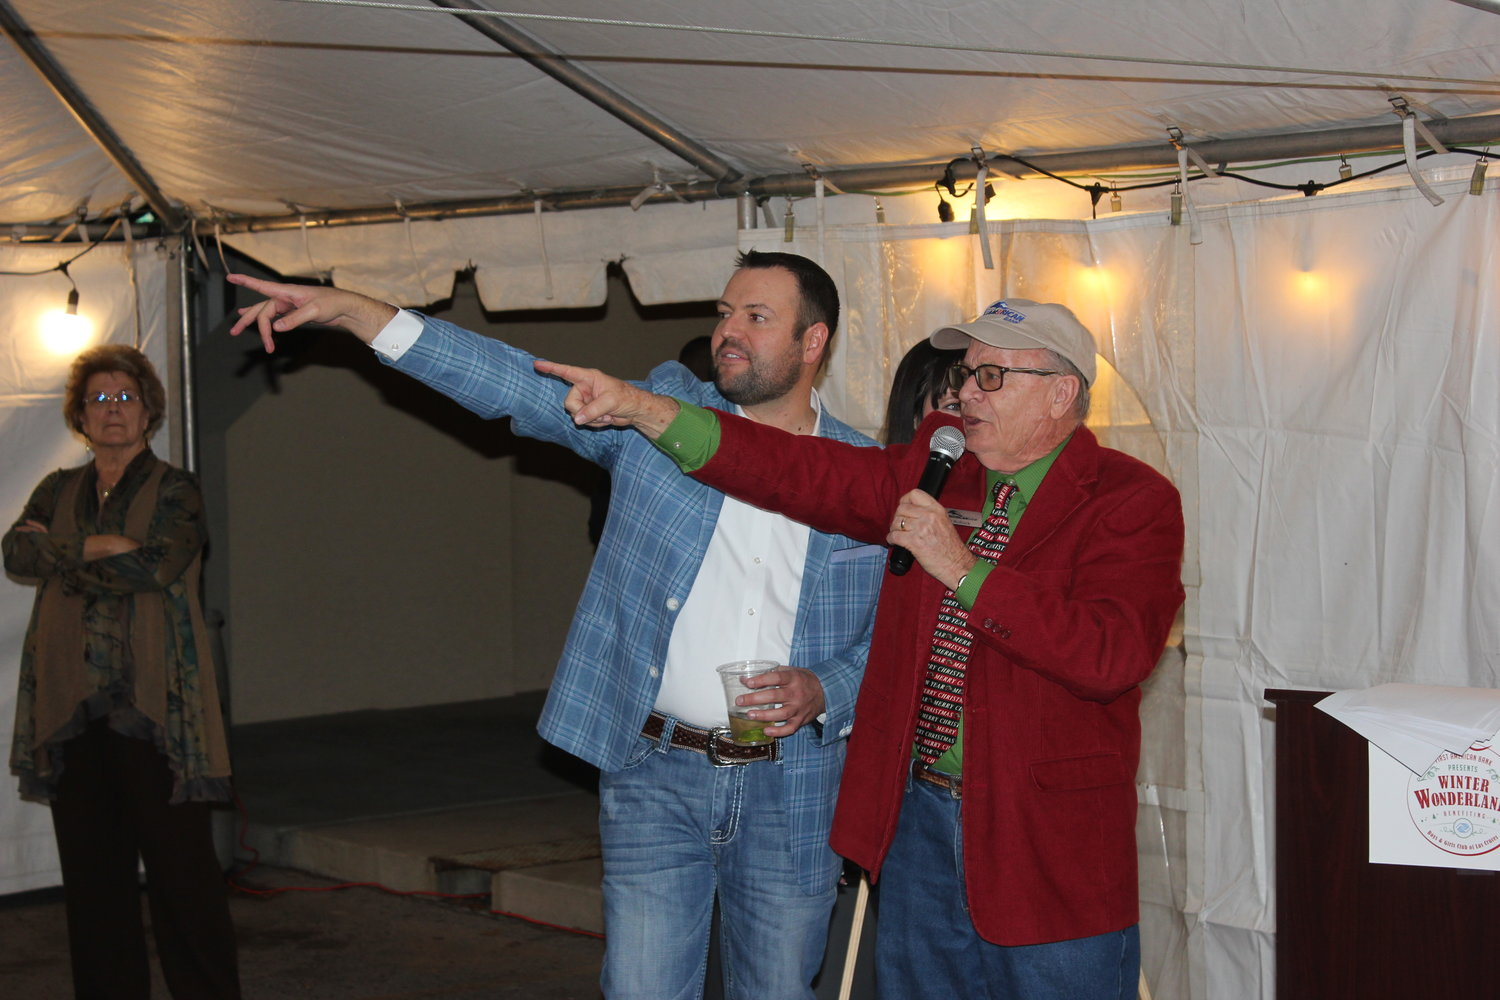 Las Cruces Boys and Girls Club board chair Kevin Merhege and auctioneer Joe Bullock of First American Bank identify bids in the Nov. 22 Christmas tree auction to benefit the Las Cruces Boys and Girls Club.